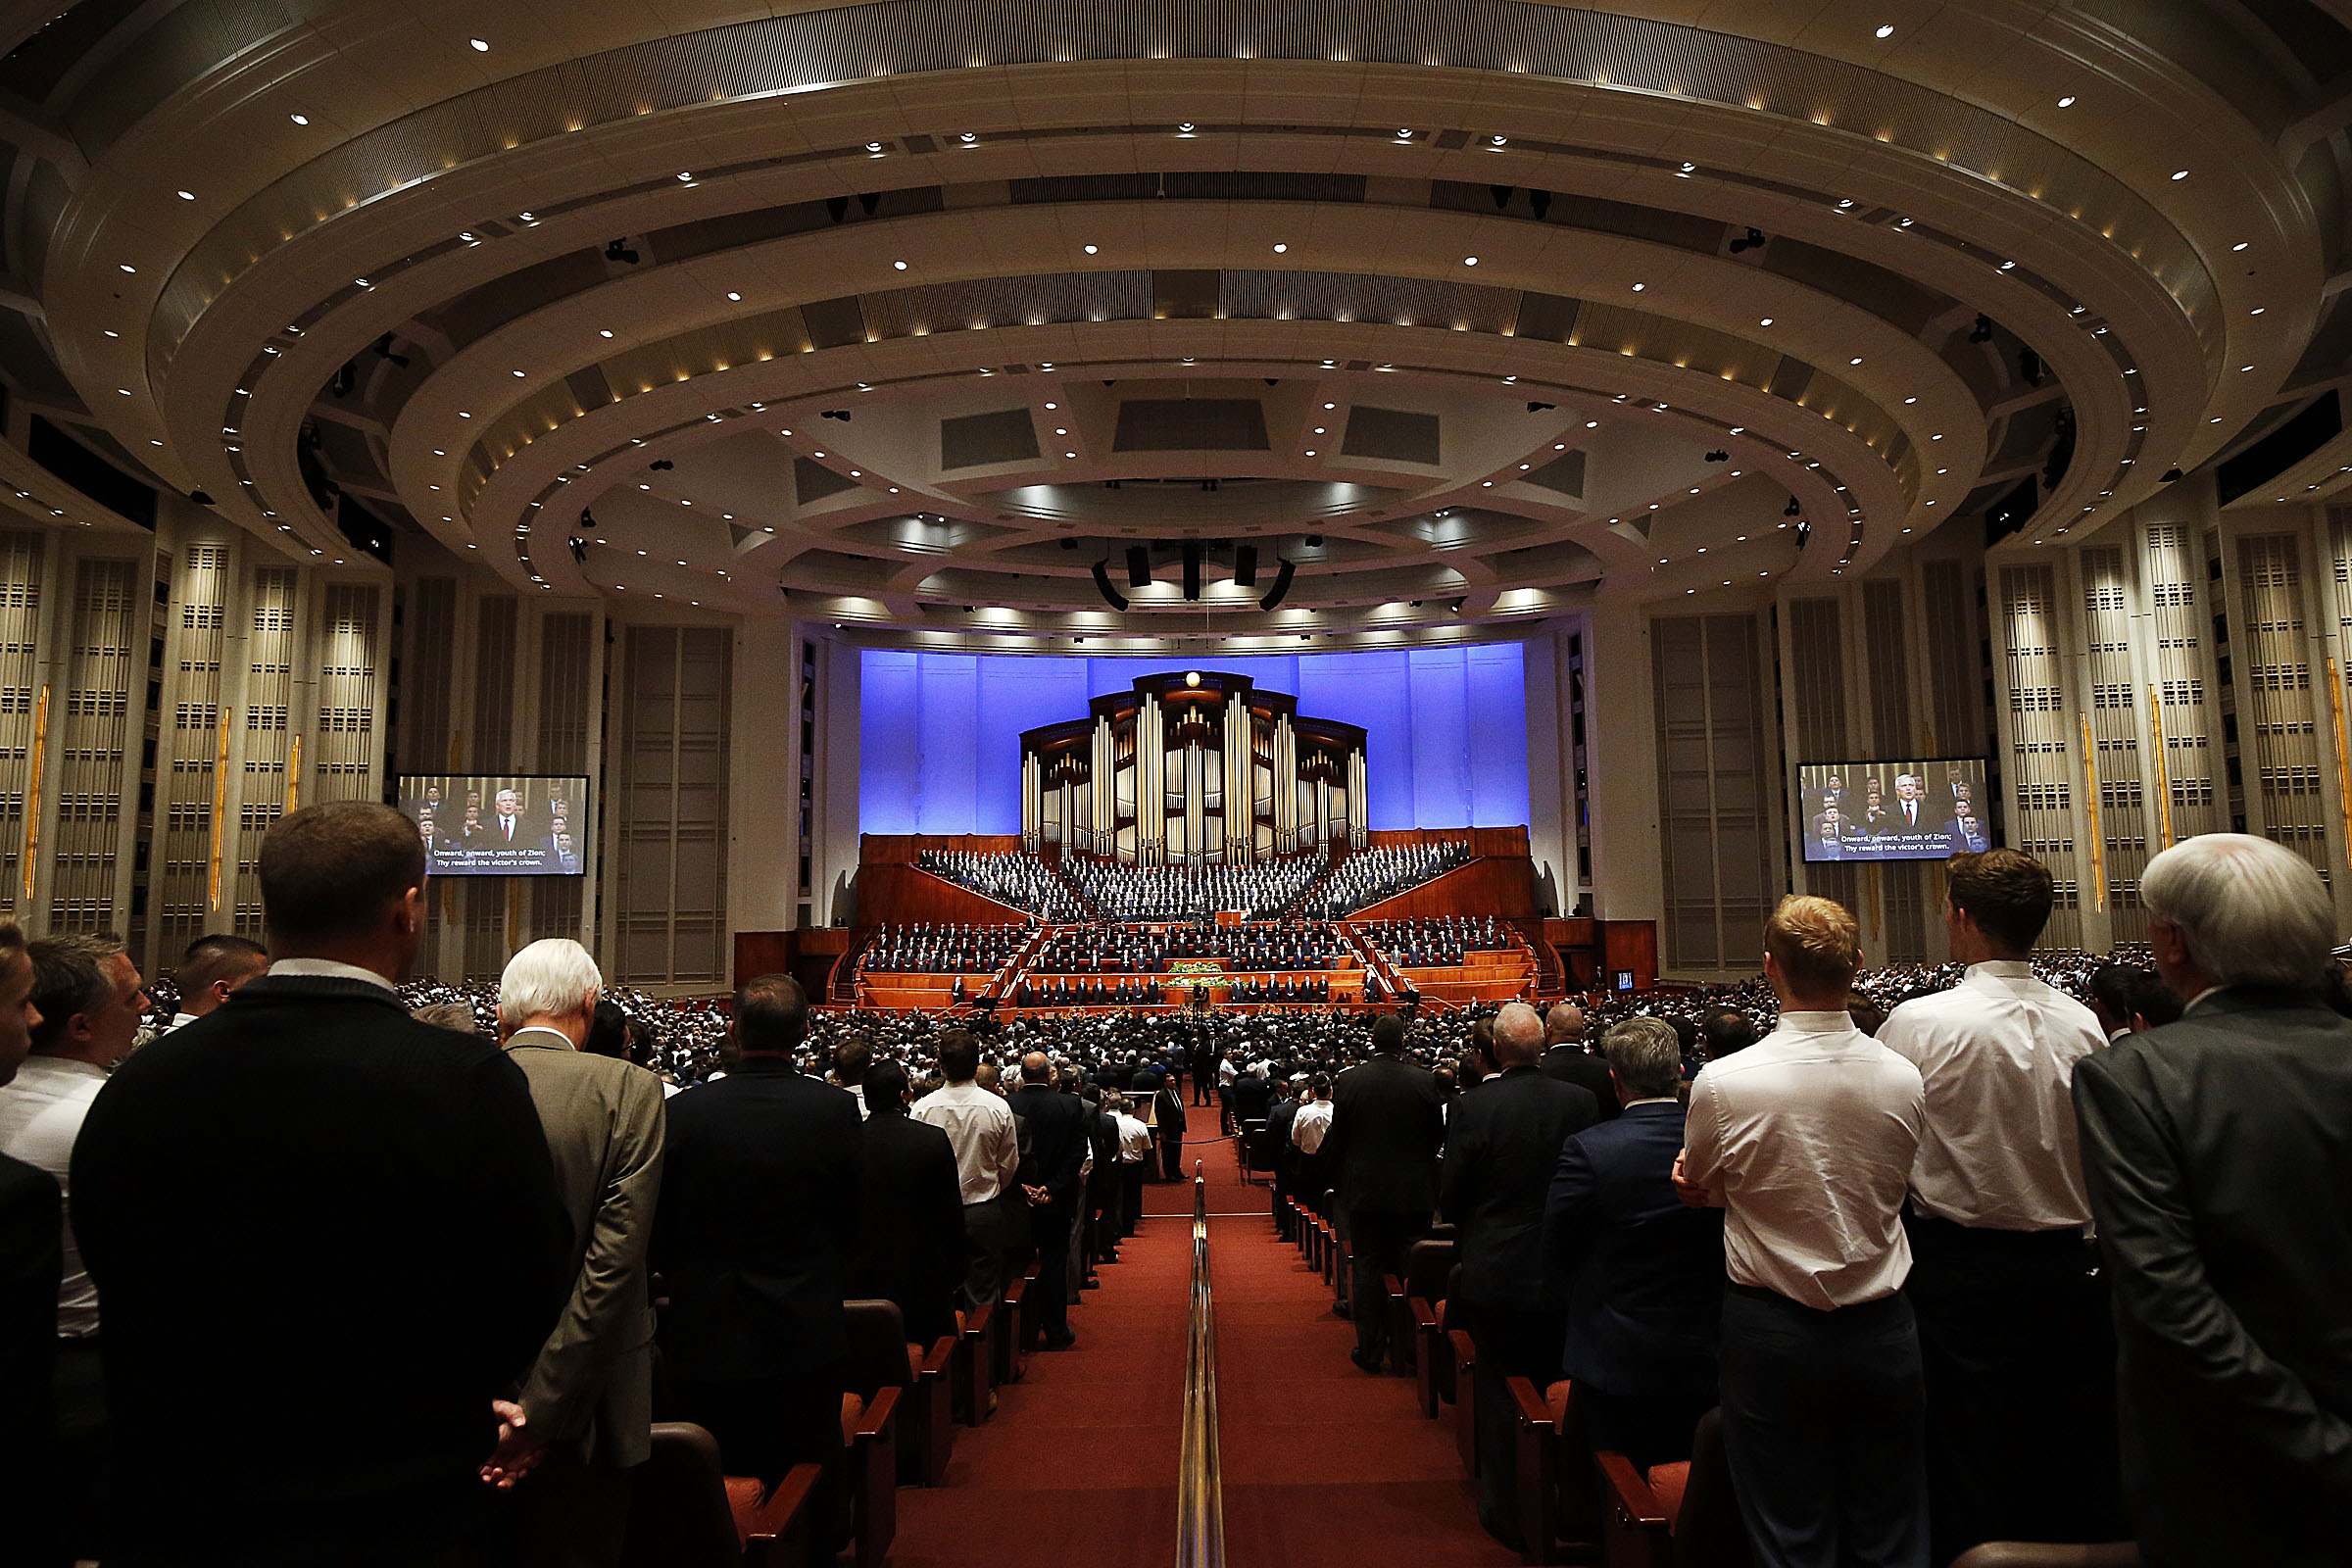 The congregation joins in singing with an Aaronic Priesthood choir from stakes in Layton, Utah, during the priesthood session of the 189th Annual General Conference of The Church of Jesus Christ of Latter-day Saints in the Conference Center in Salt Lake City on Saturday, April 6, 2019.